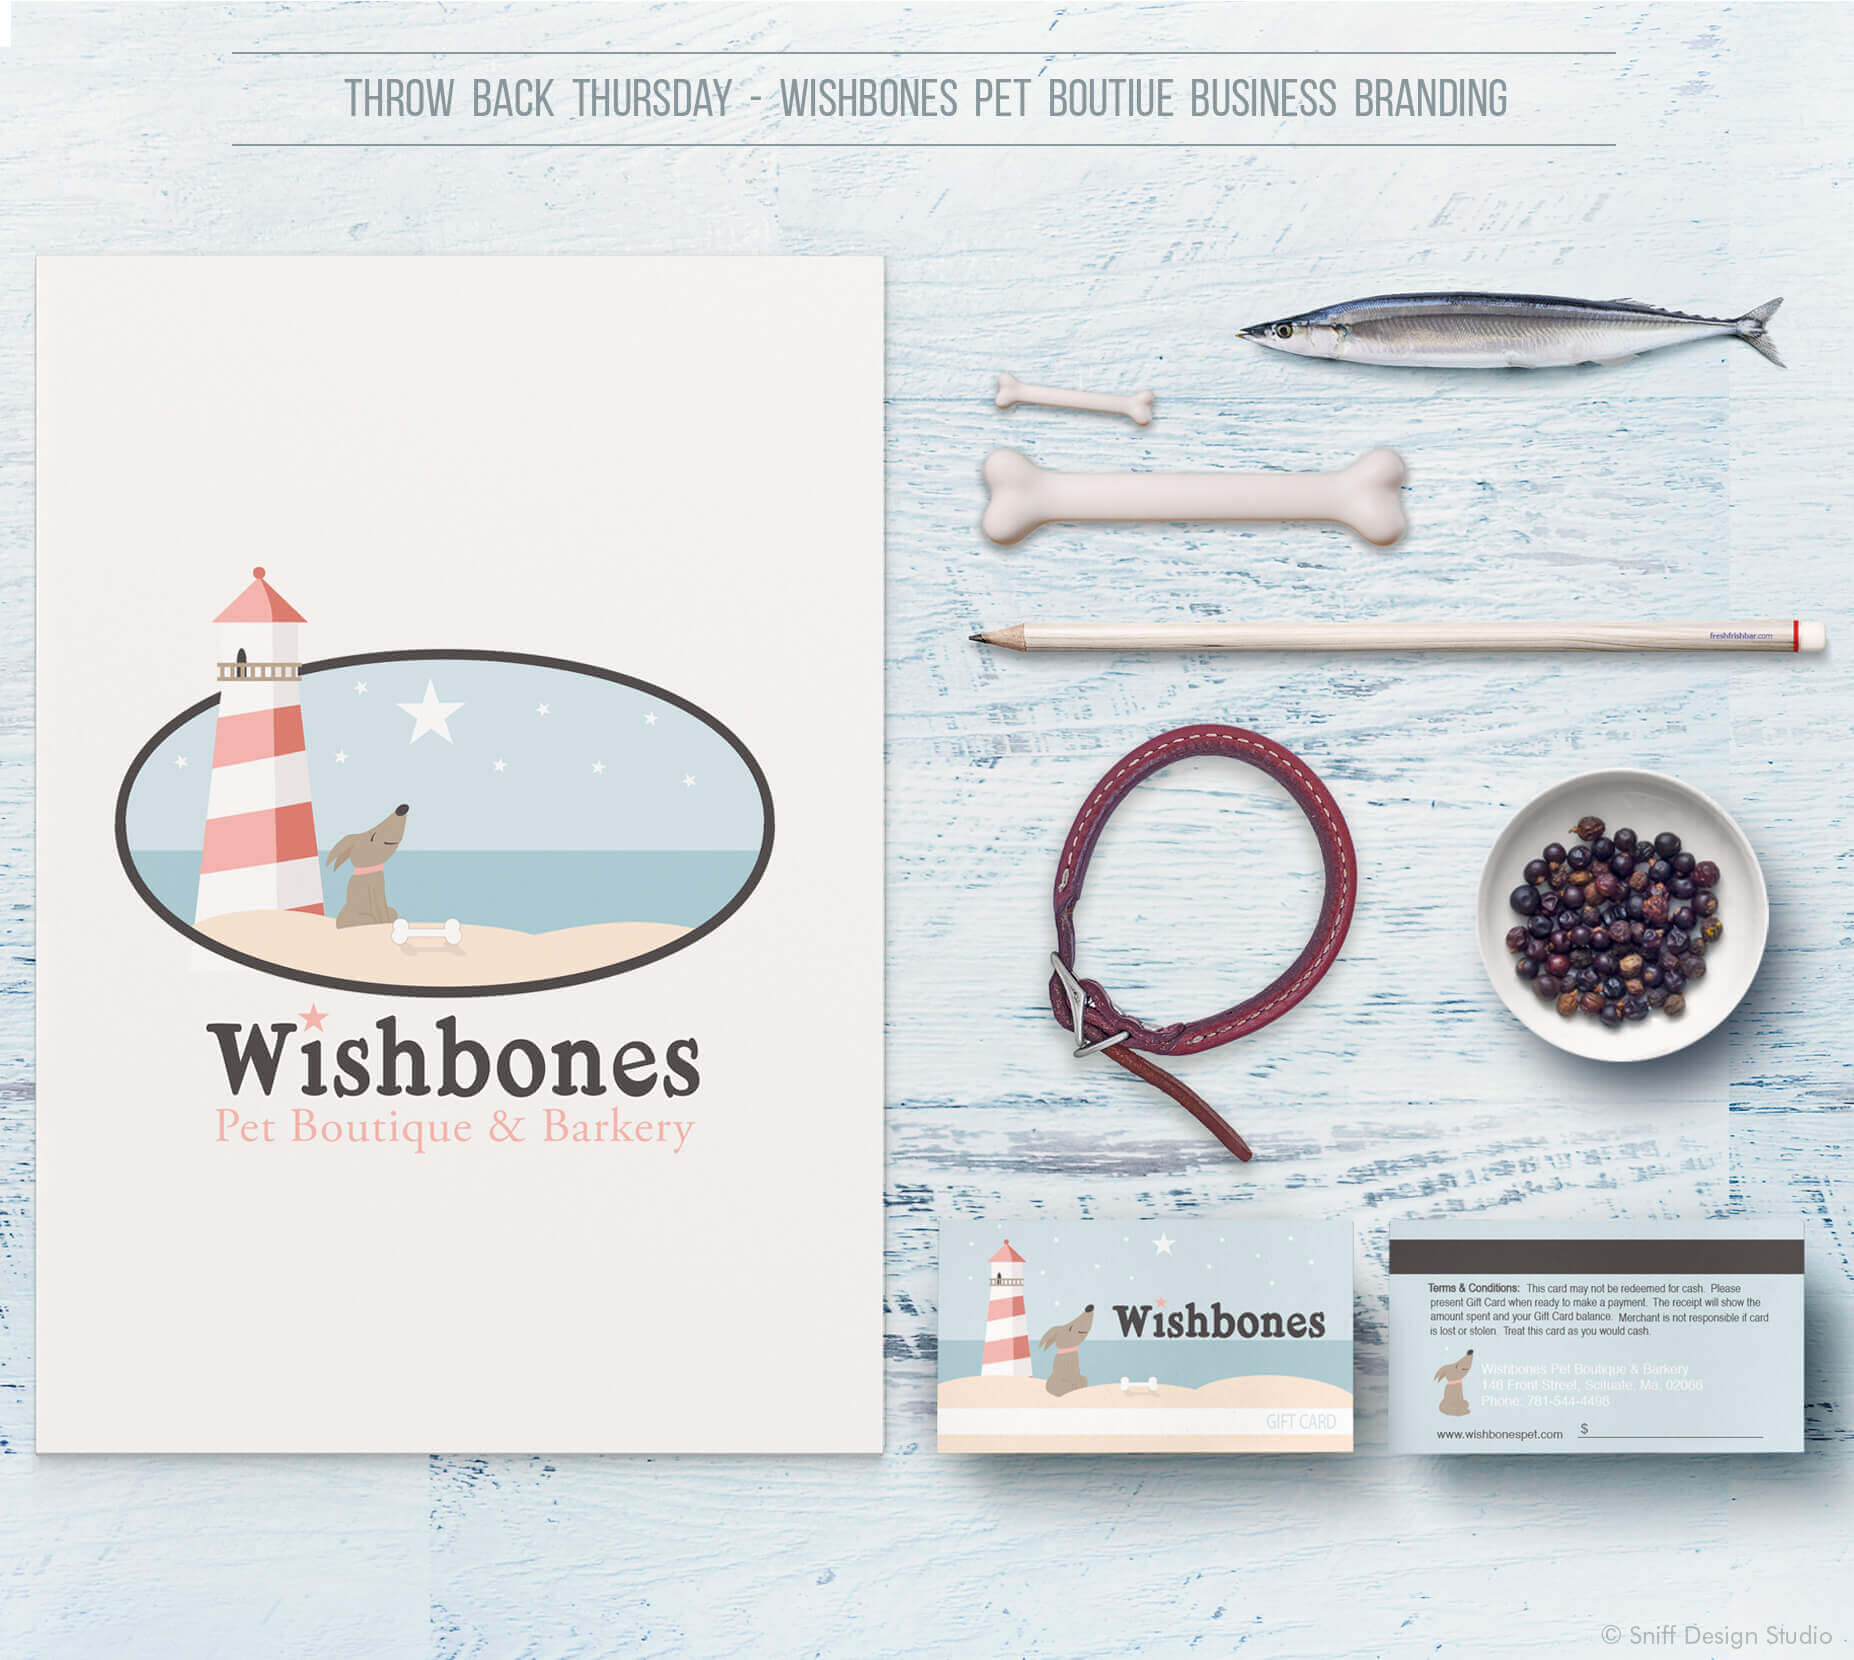 Wishbones Pet Boutique business branding design